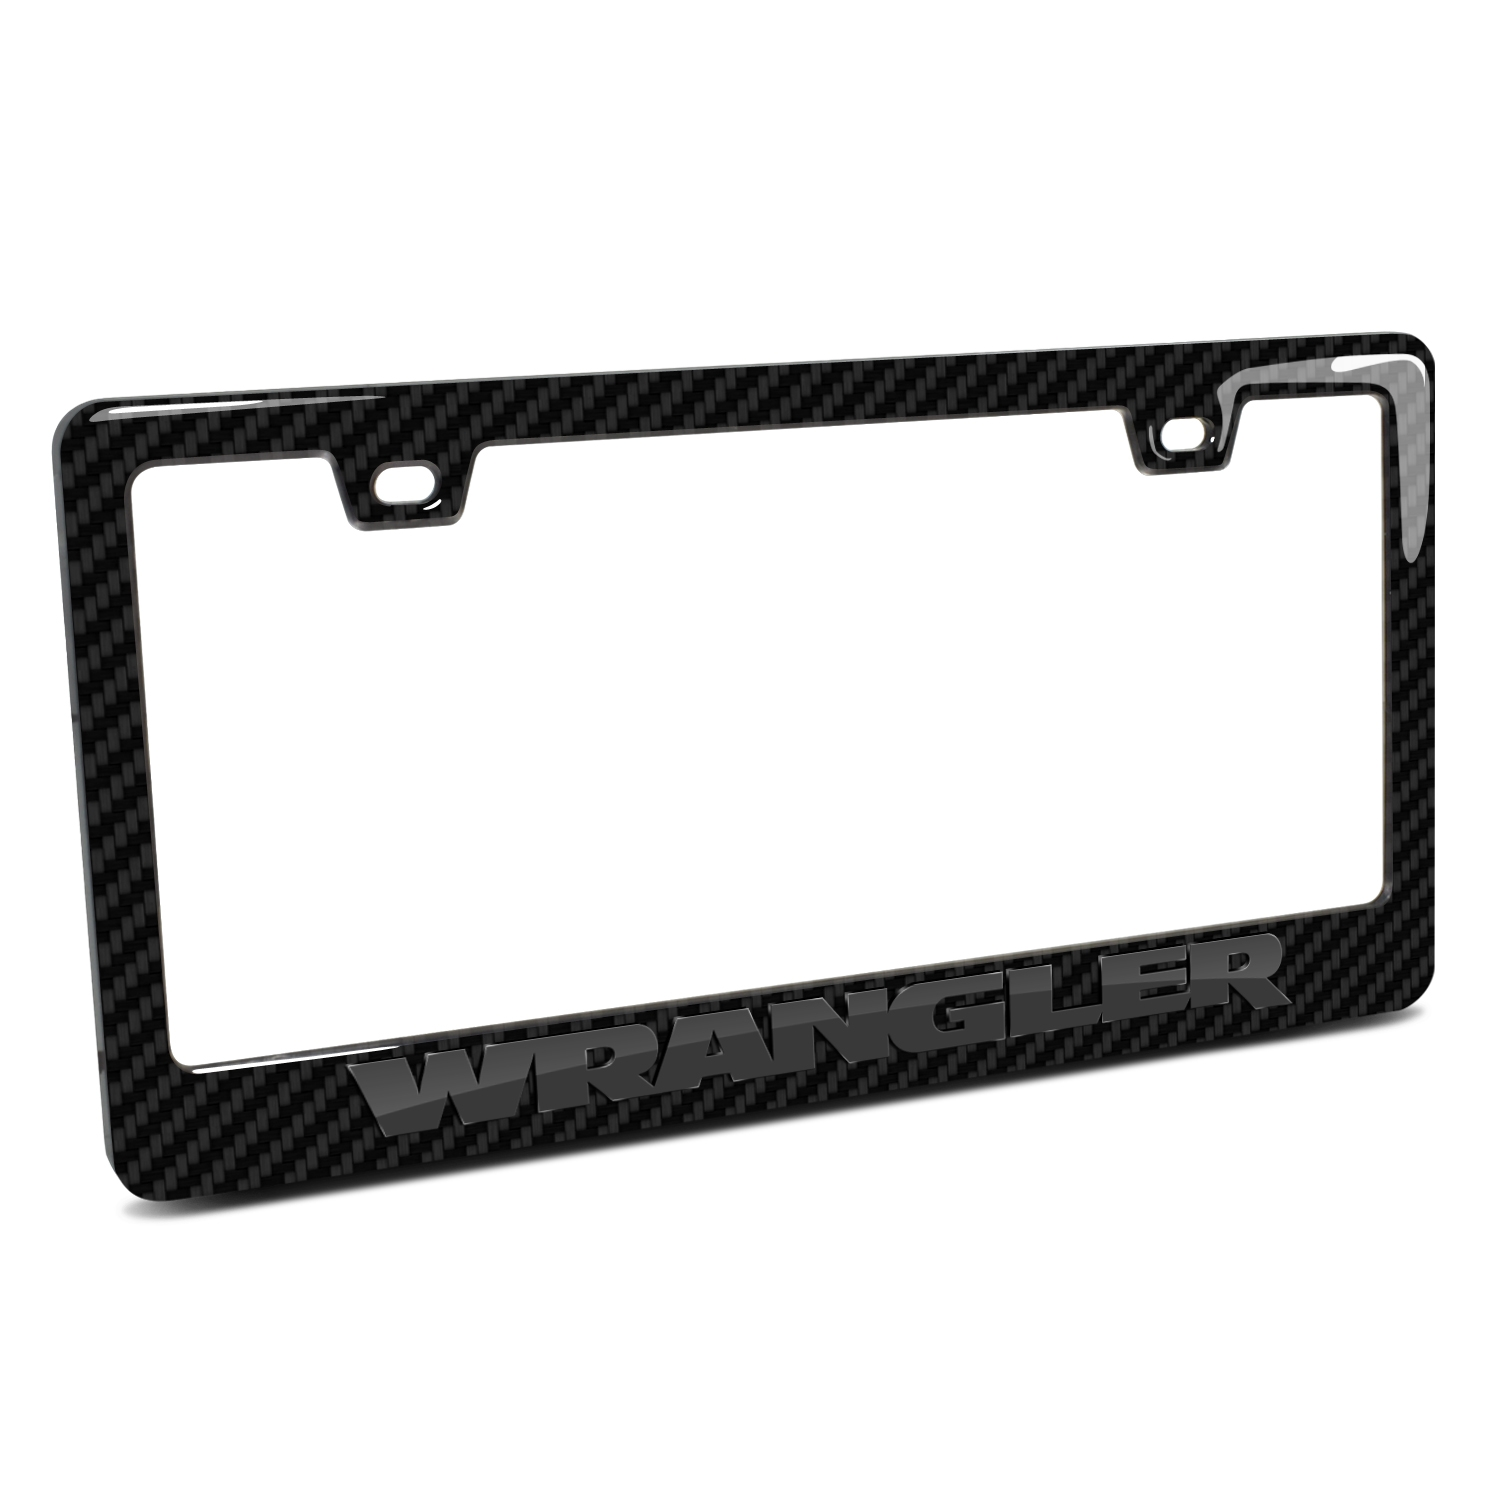 Jeep Wrangler in 3D Black on Black Real 3K Carbon Fiber Finish ABS Plastic License Plate Frame